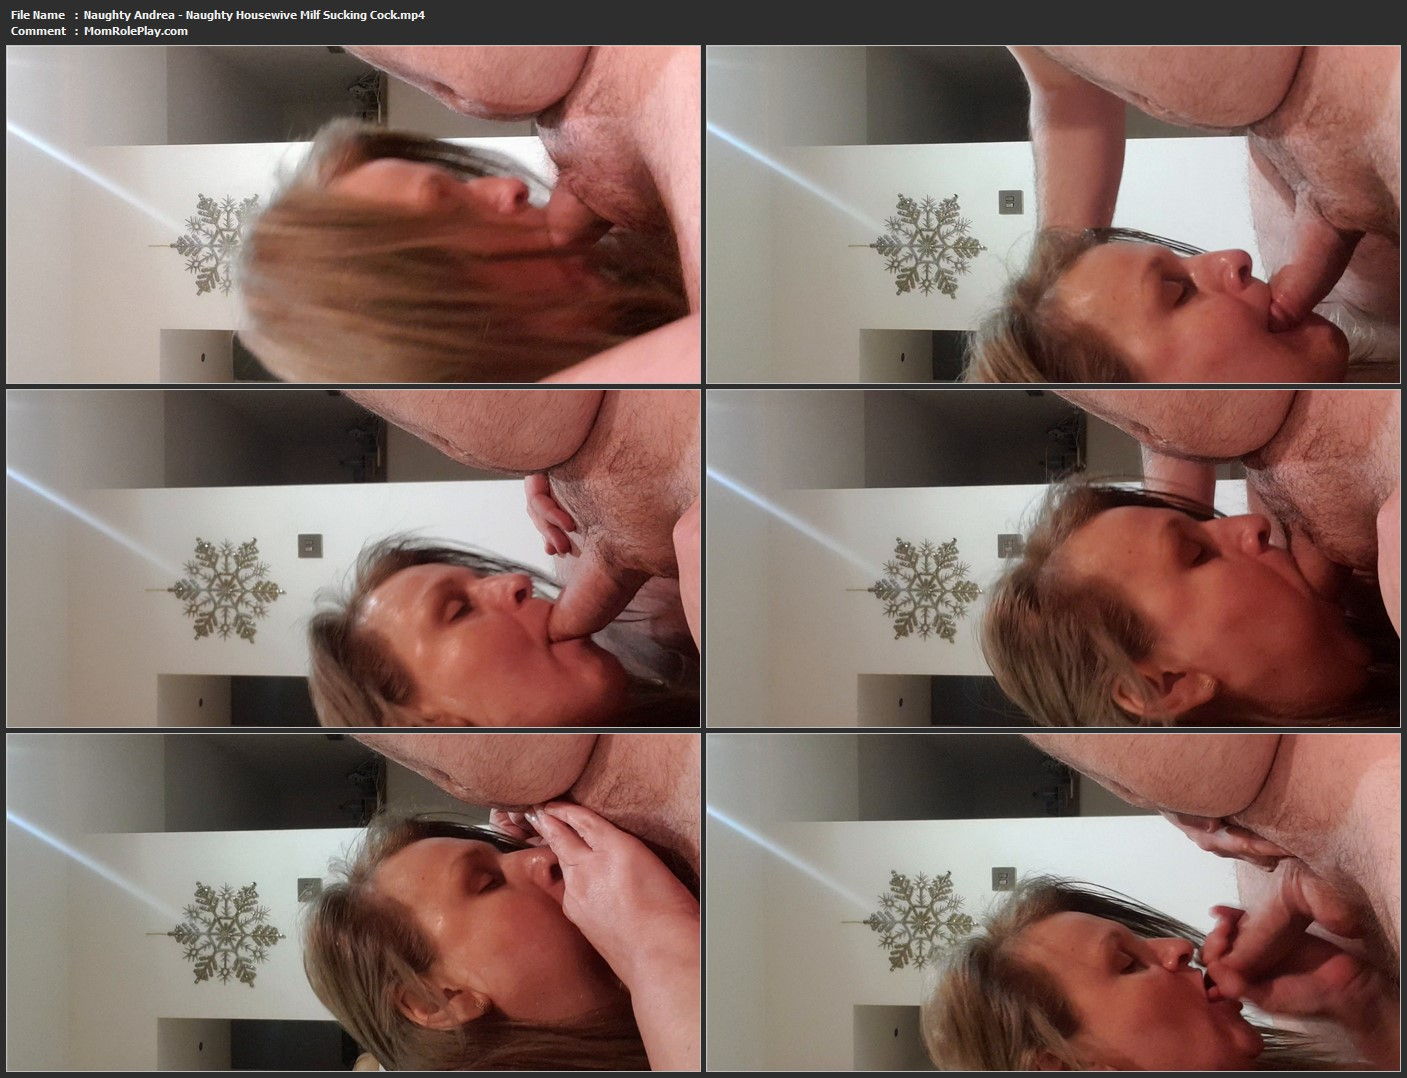 Naughty Andrea - Naughty Housewive Milf Sucking Cock